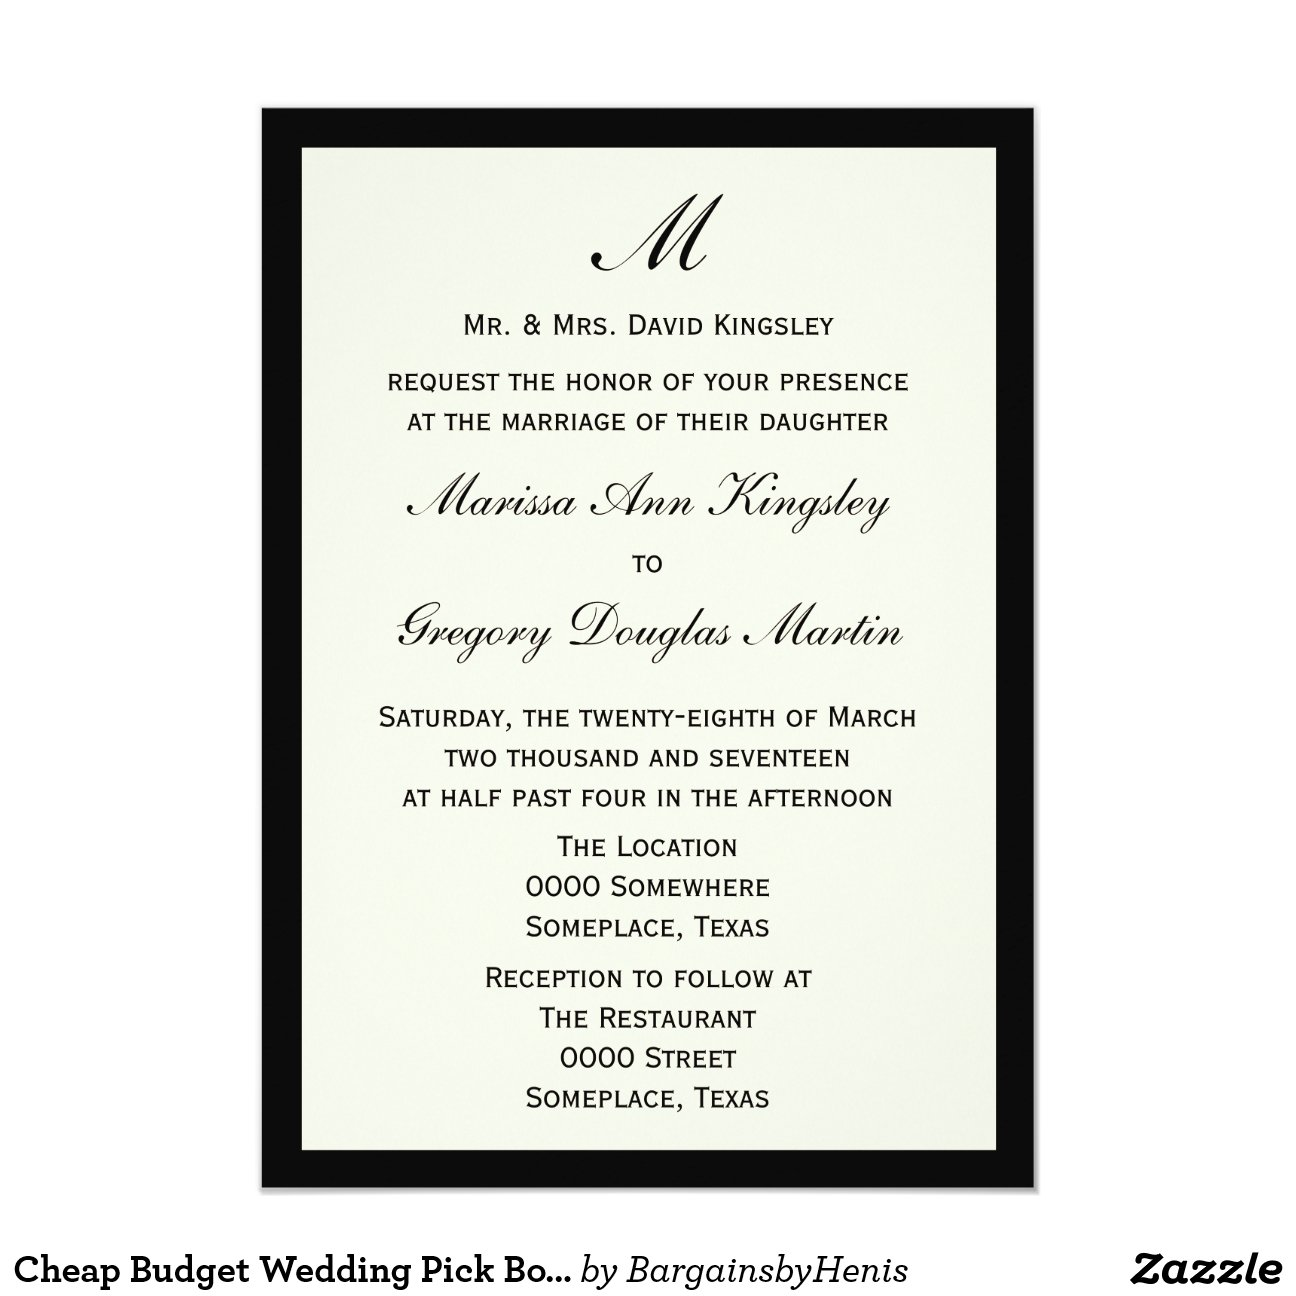 Clearance Wedding Invitations is one of our best ideas you might choose for invitation design